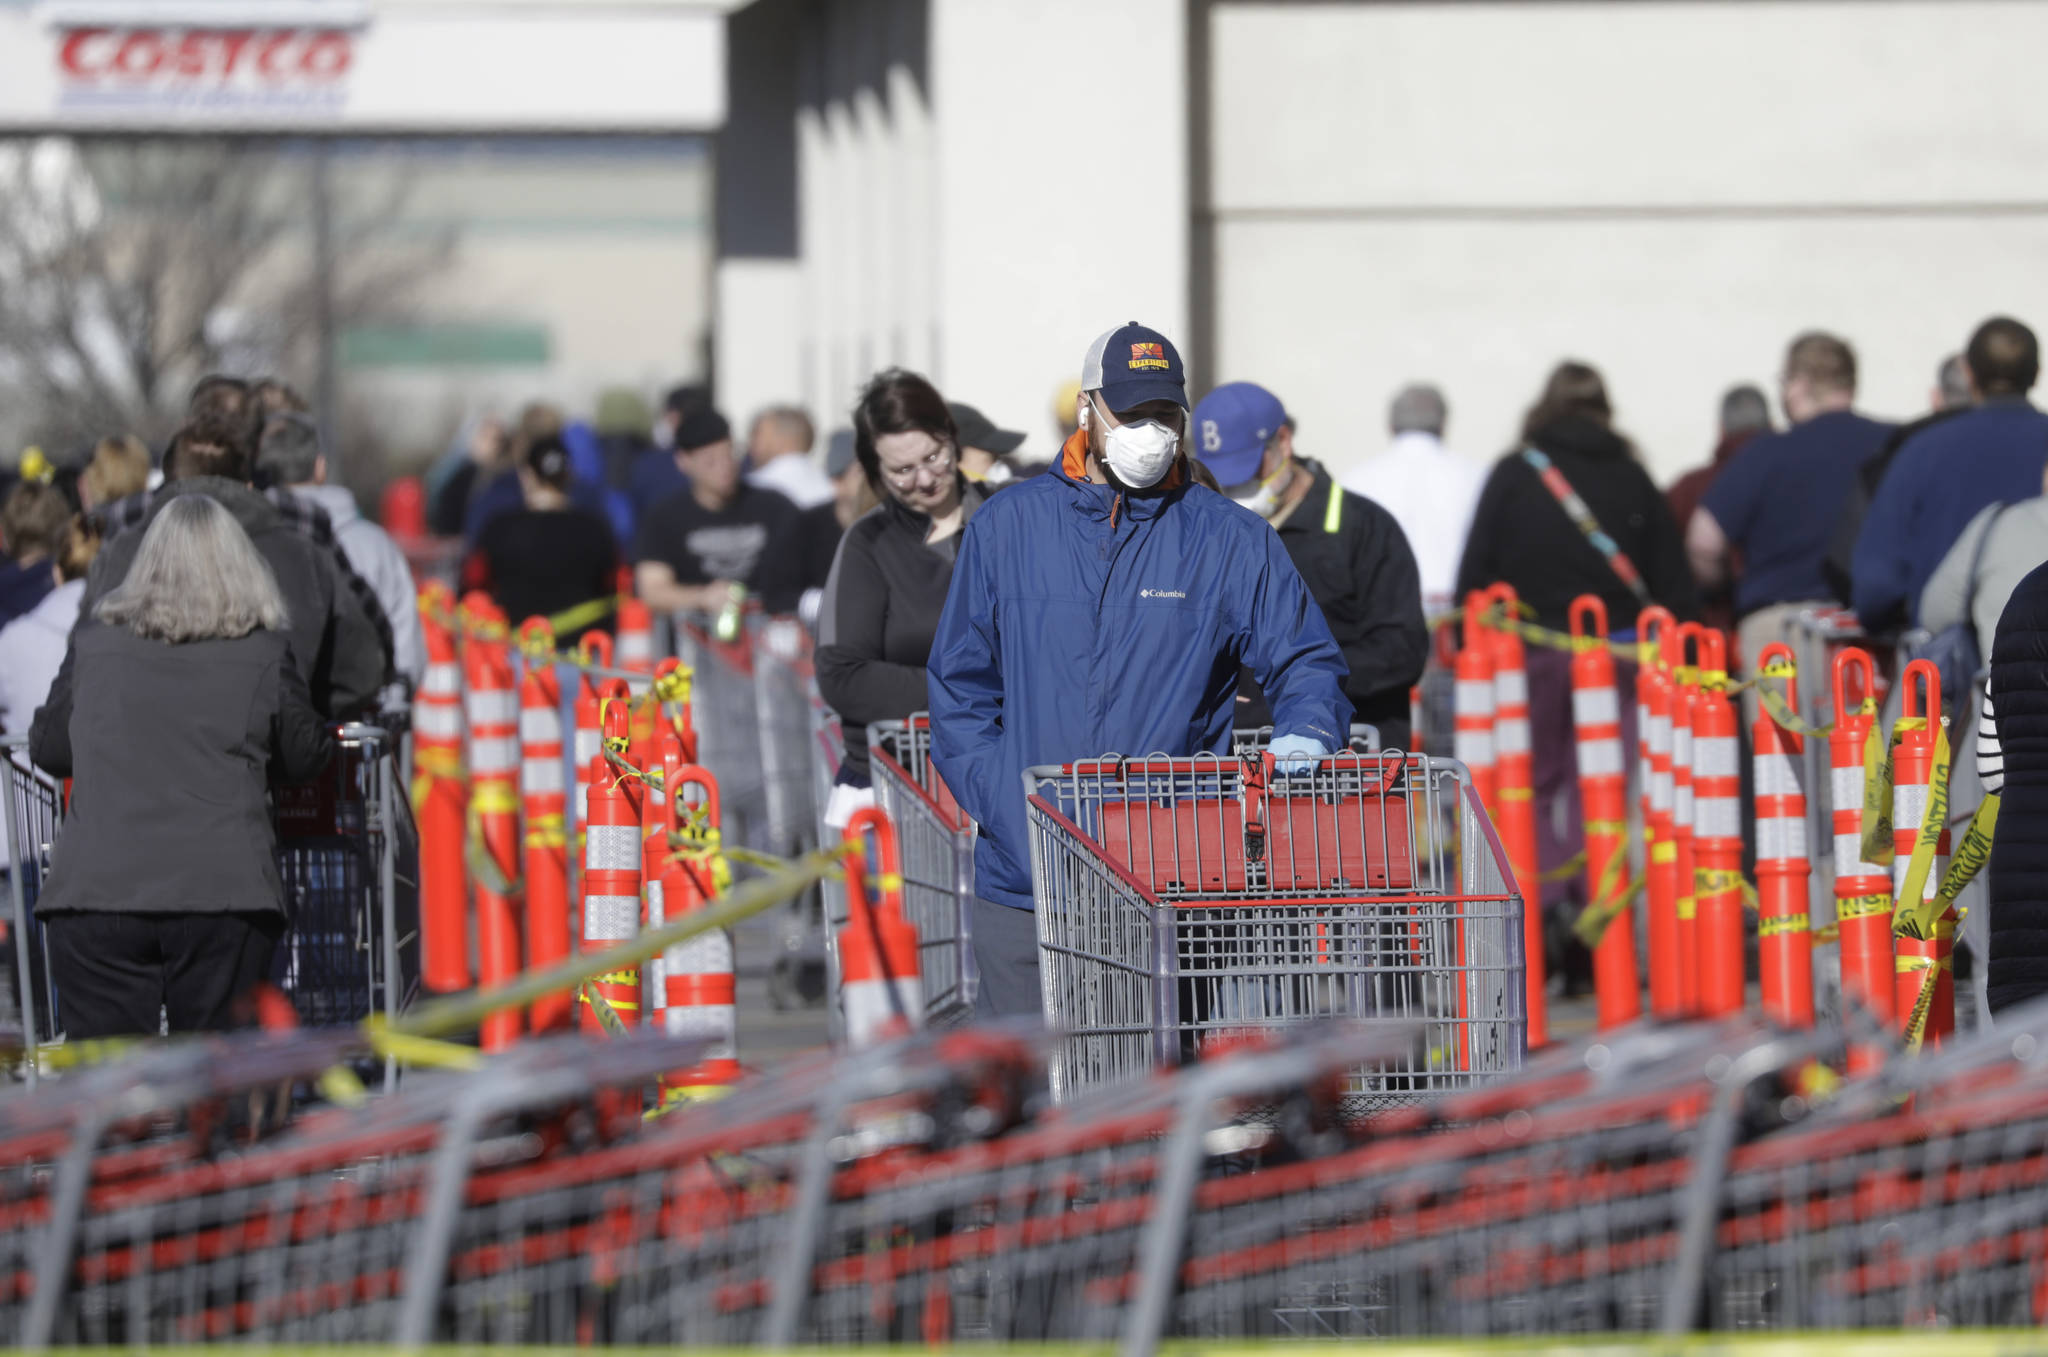 A person wears a mask as he stands in line at Costco Saturday, April 4, 2020, in Salt Lake City. The Centers for Disease Control and Prevention is now advising Americans to voluntarily wear a basic cloth or fabric face mask to help curb the spread of the new coronavirus. (AP Photo/Rick Bowmer)